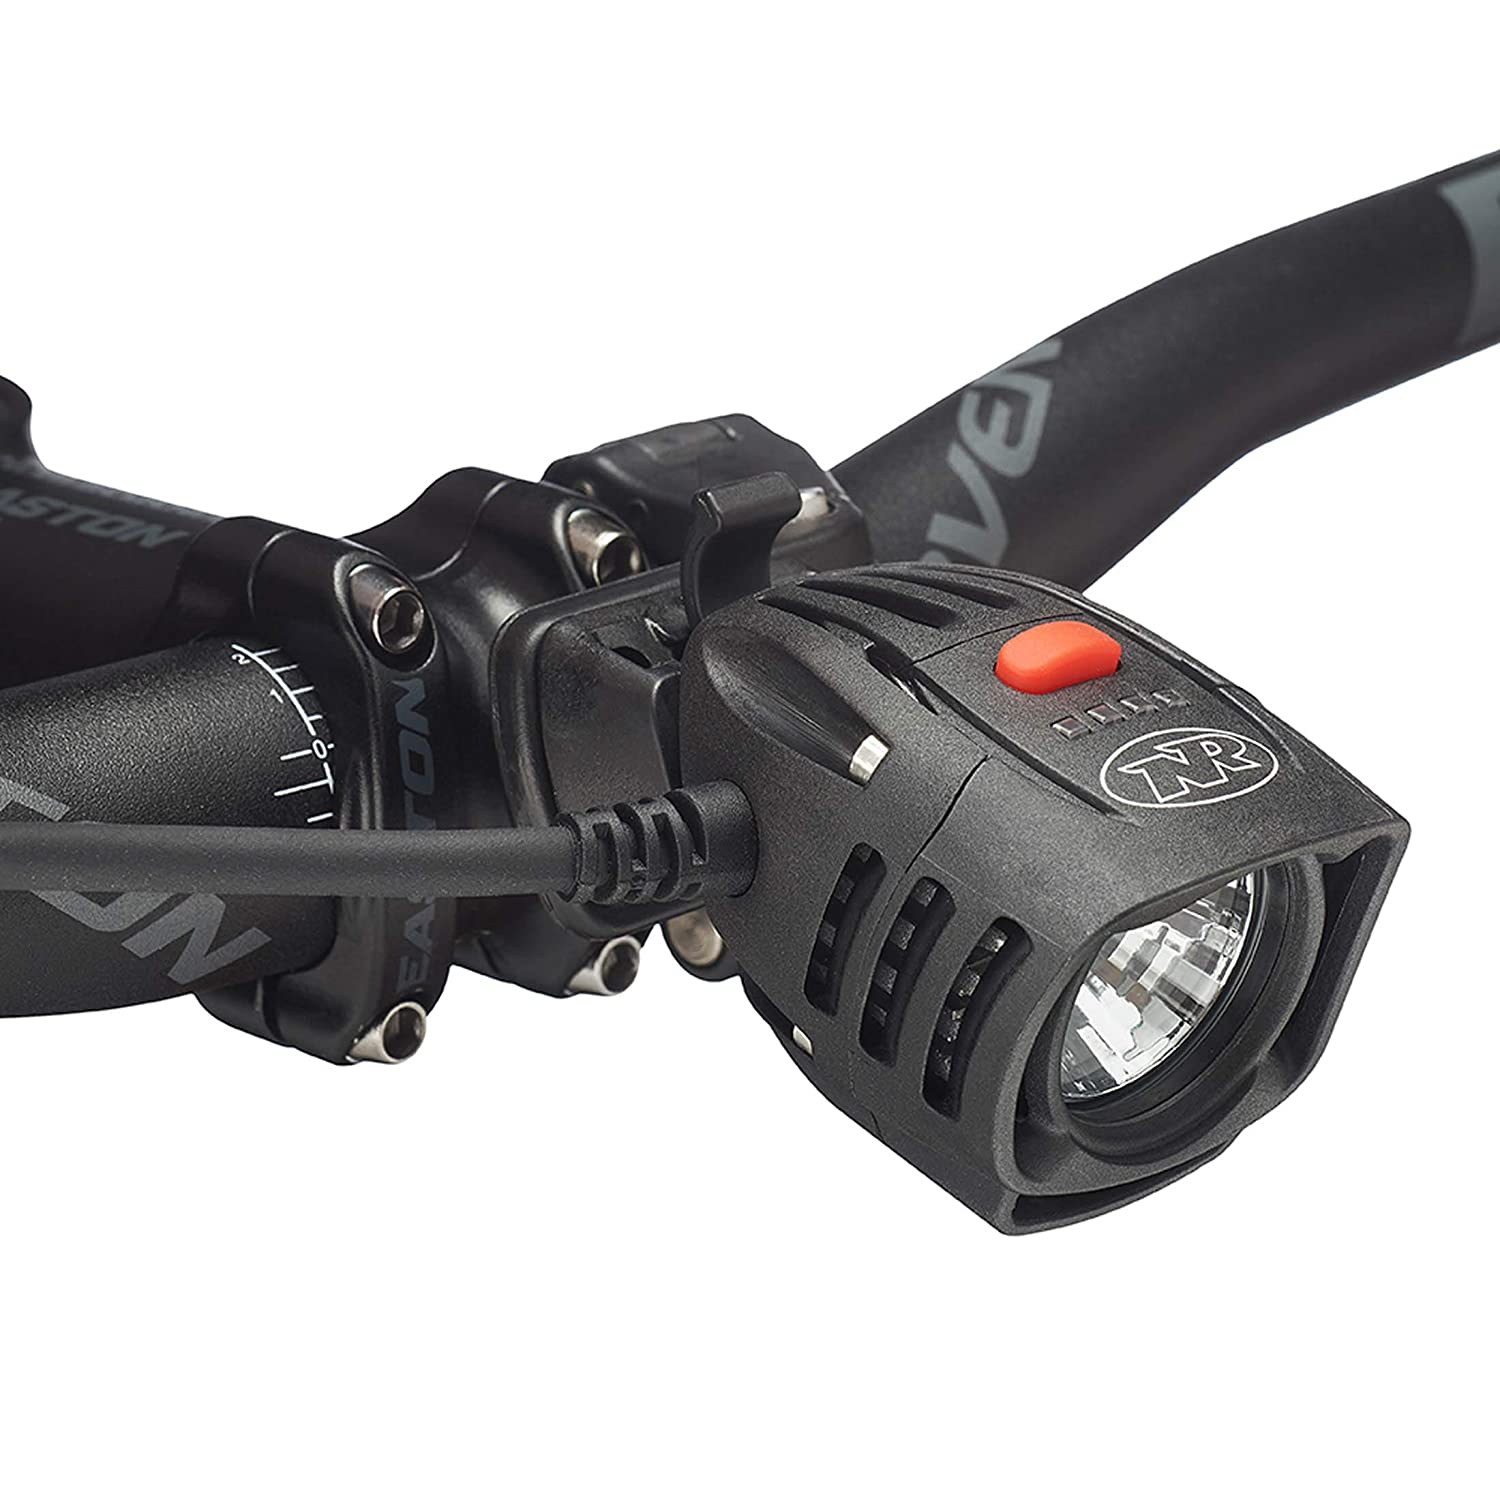 Top 9 Best Bike Lights Reviews in 2020 You Should Check Out 4